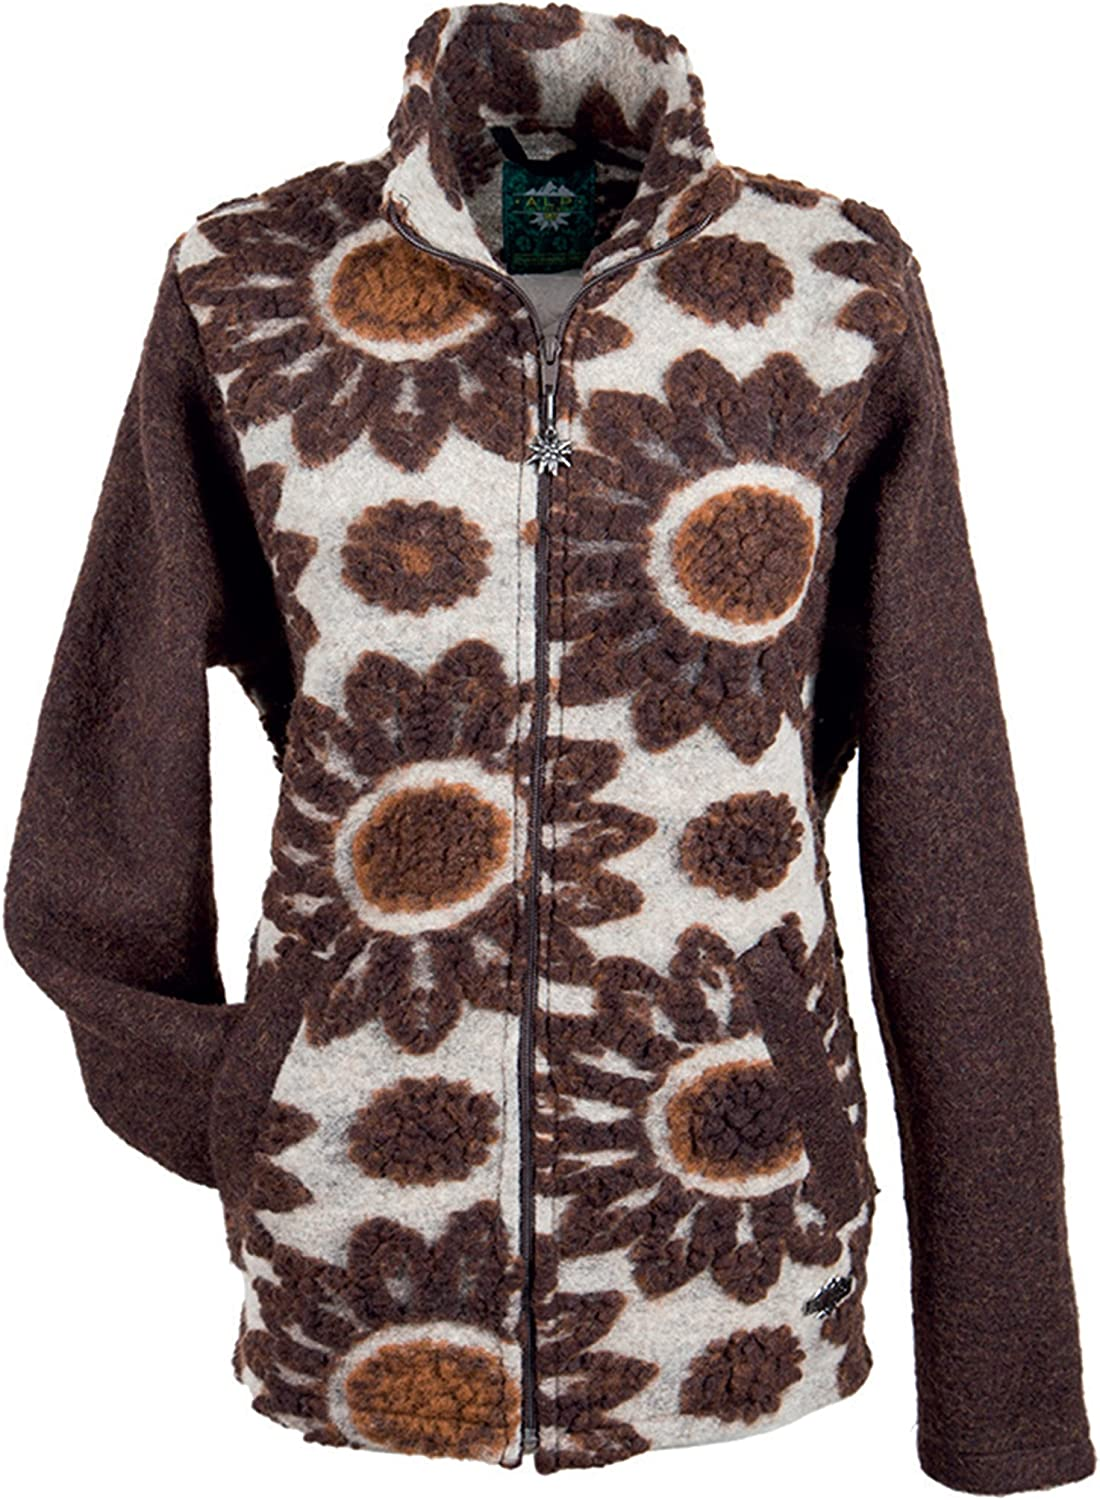 Alp by Brush Ladies WoolFantasy Jacket